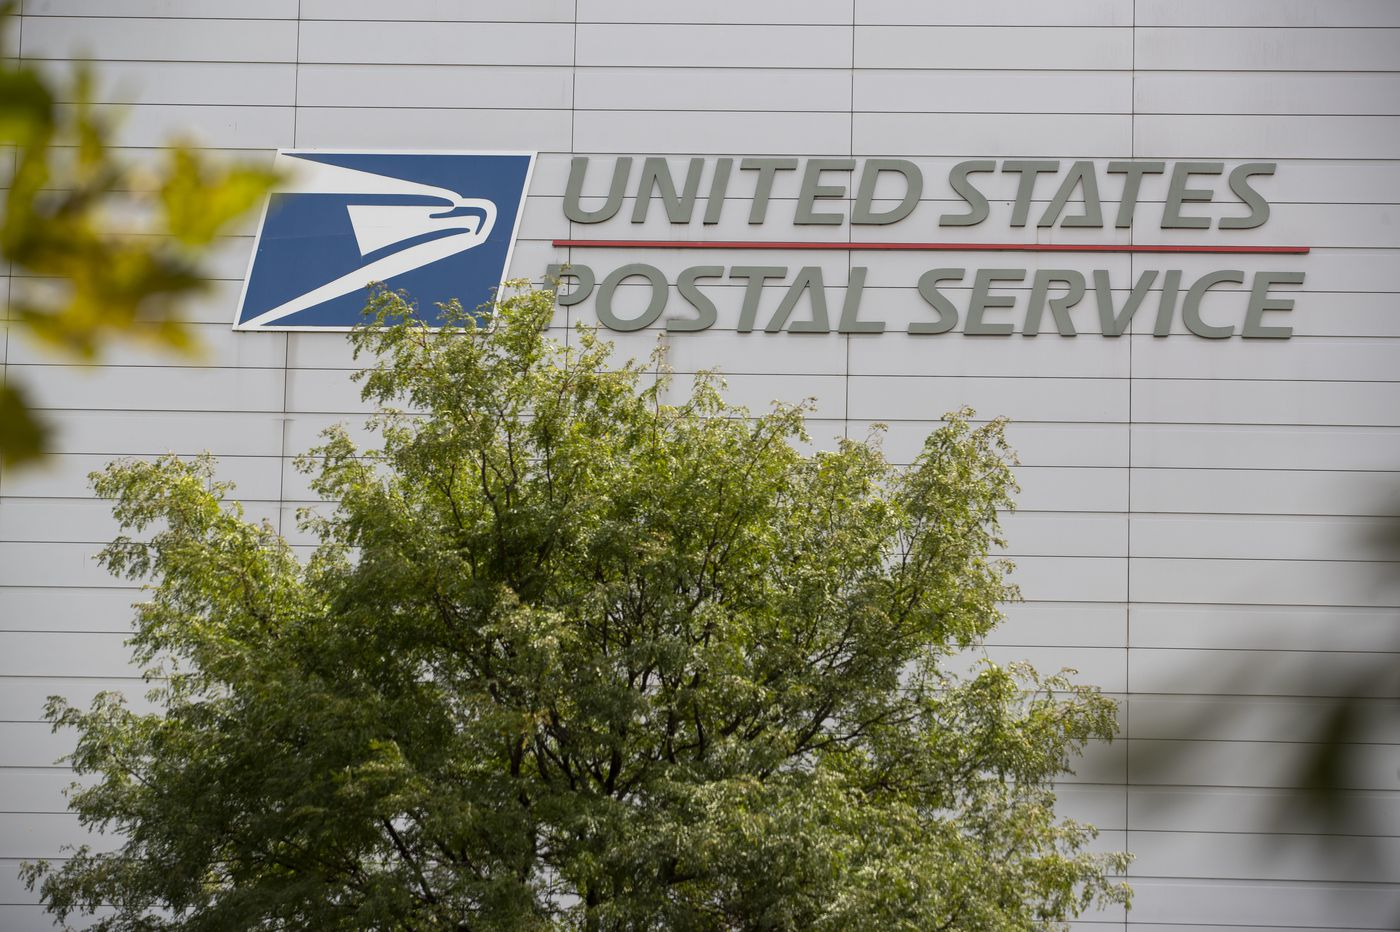 A few USPS plants are reinstalling mail sorting machines. But in Philly, more changes that could cause delays are happening.